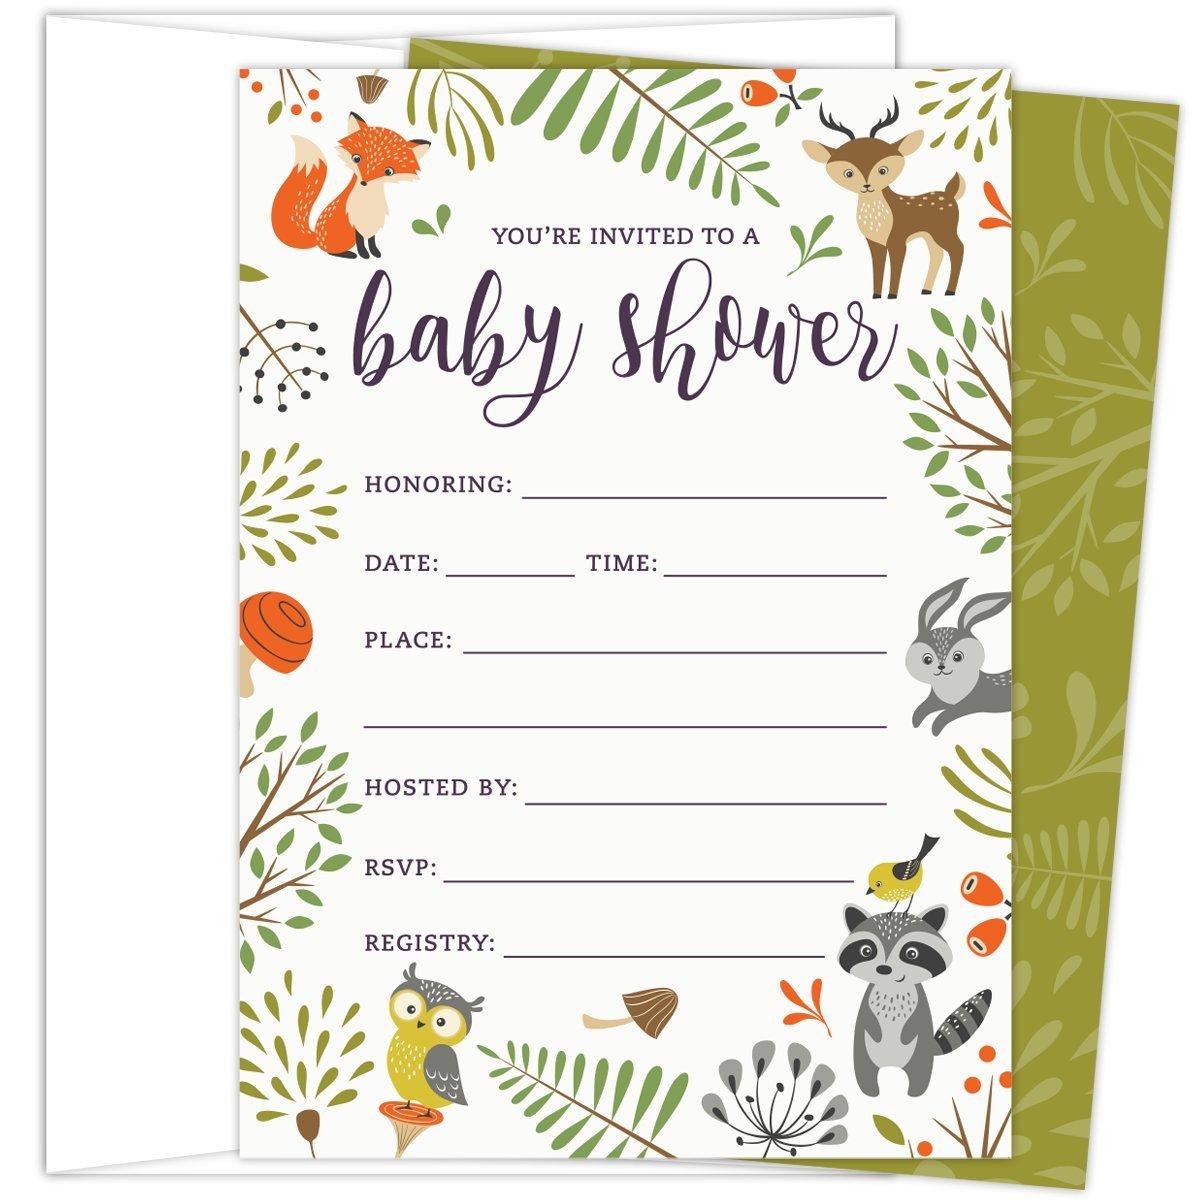 photograph relating to Free Printable Woodland Baby Shower Invitations named Woodland Little one Shower Invites with Owl and Forest Pets. Fixed of 25 Fill-inside Style and design Blank Playing cards and Envelopes. Uni Design and style Applicable for Boy or